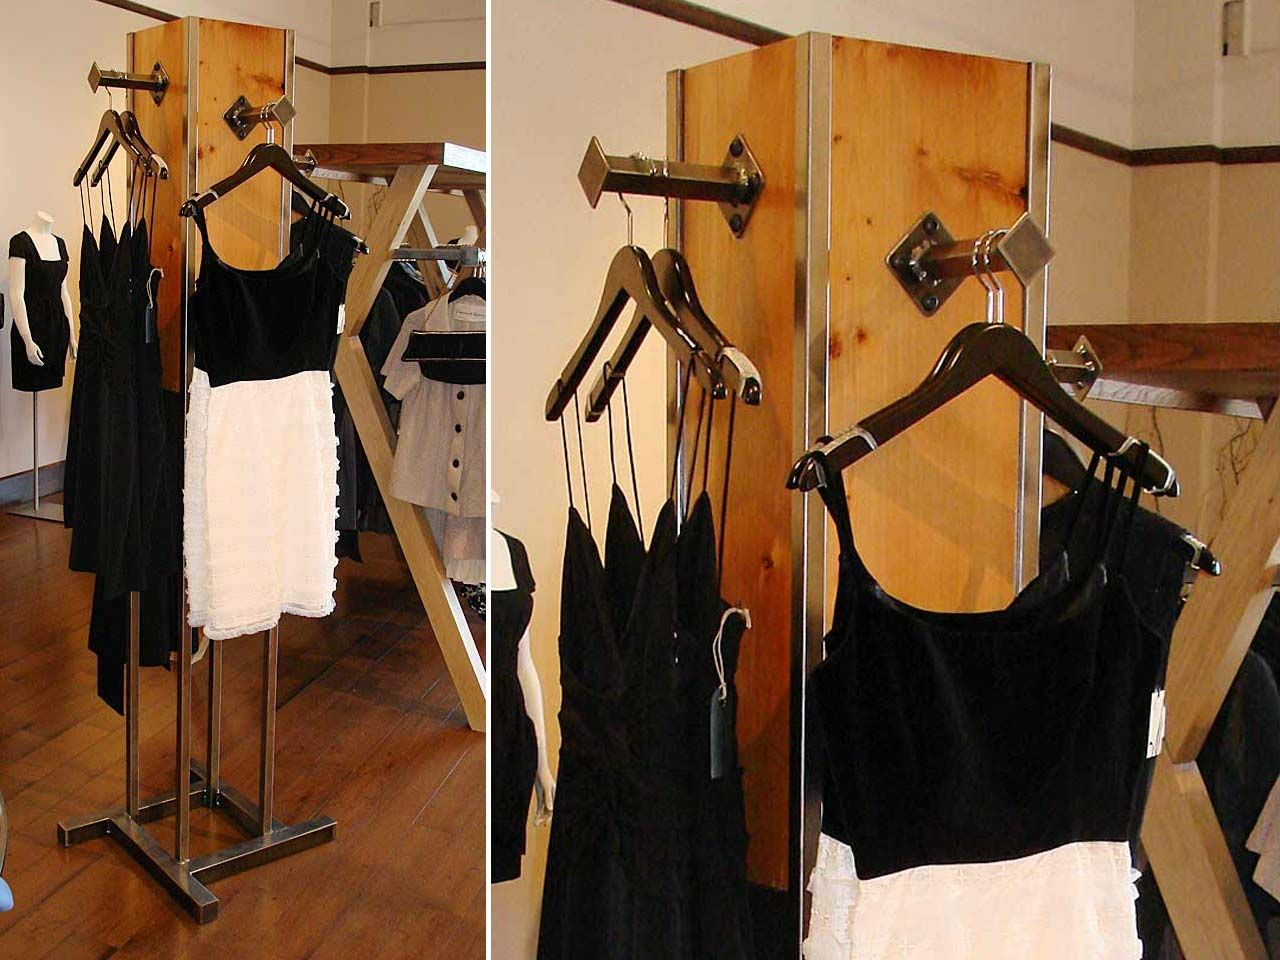 Handmade Freestanding Clothing Display Rack By Where Wood